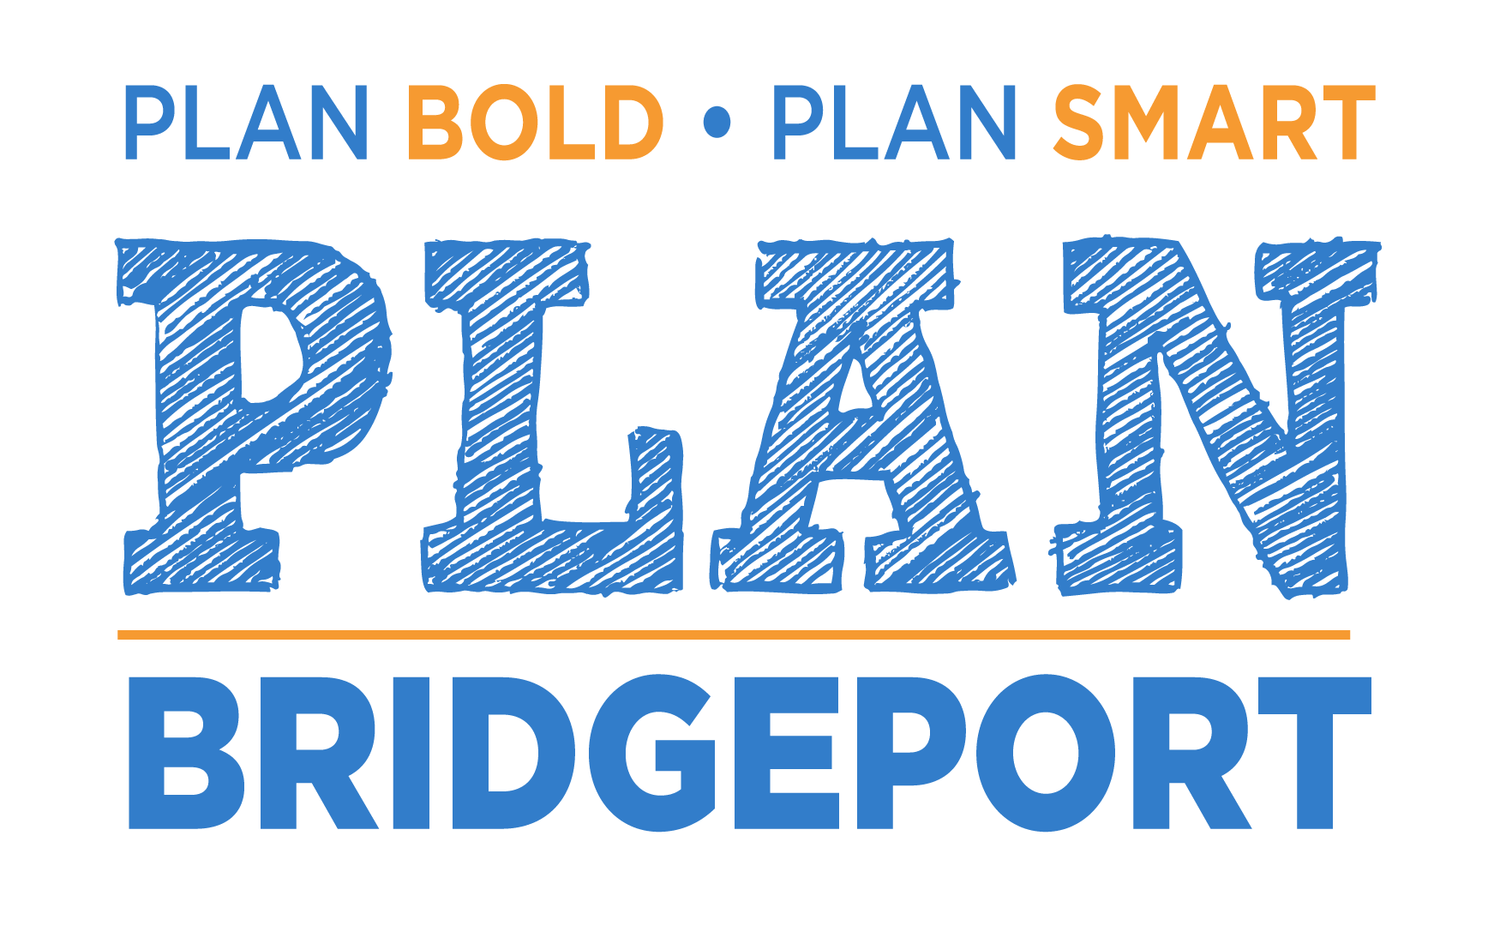 PLAN BRIDGEPORT